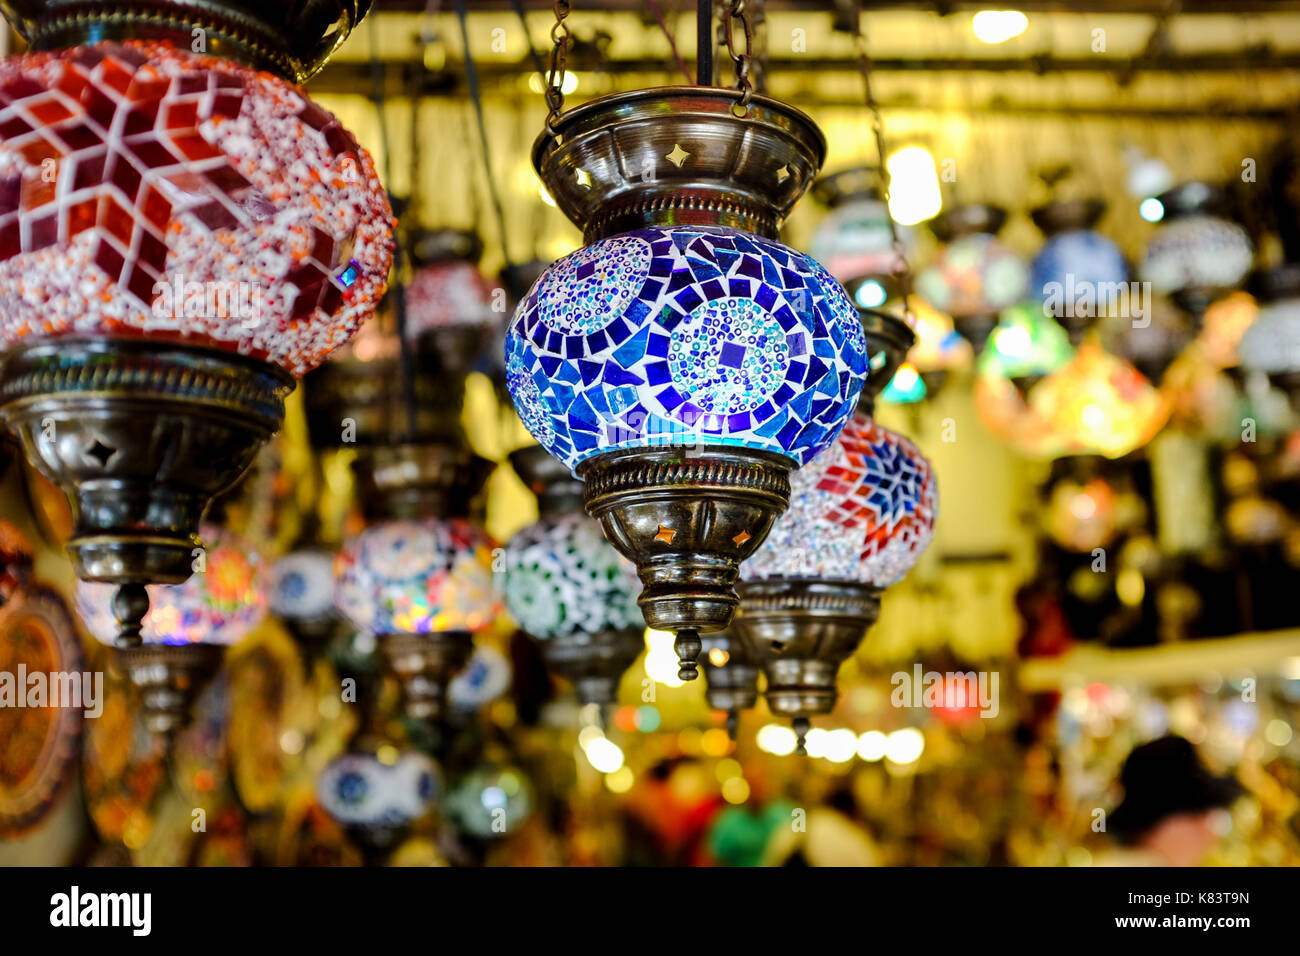 Turkish lanterns and other bracelets and rings are seen in shops in Kusadasi, Turkey. - Stock Image